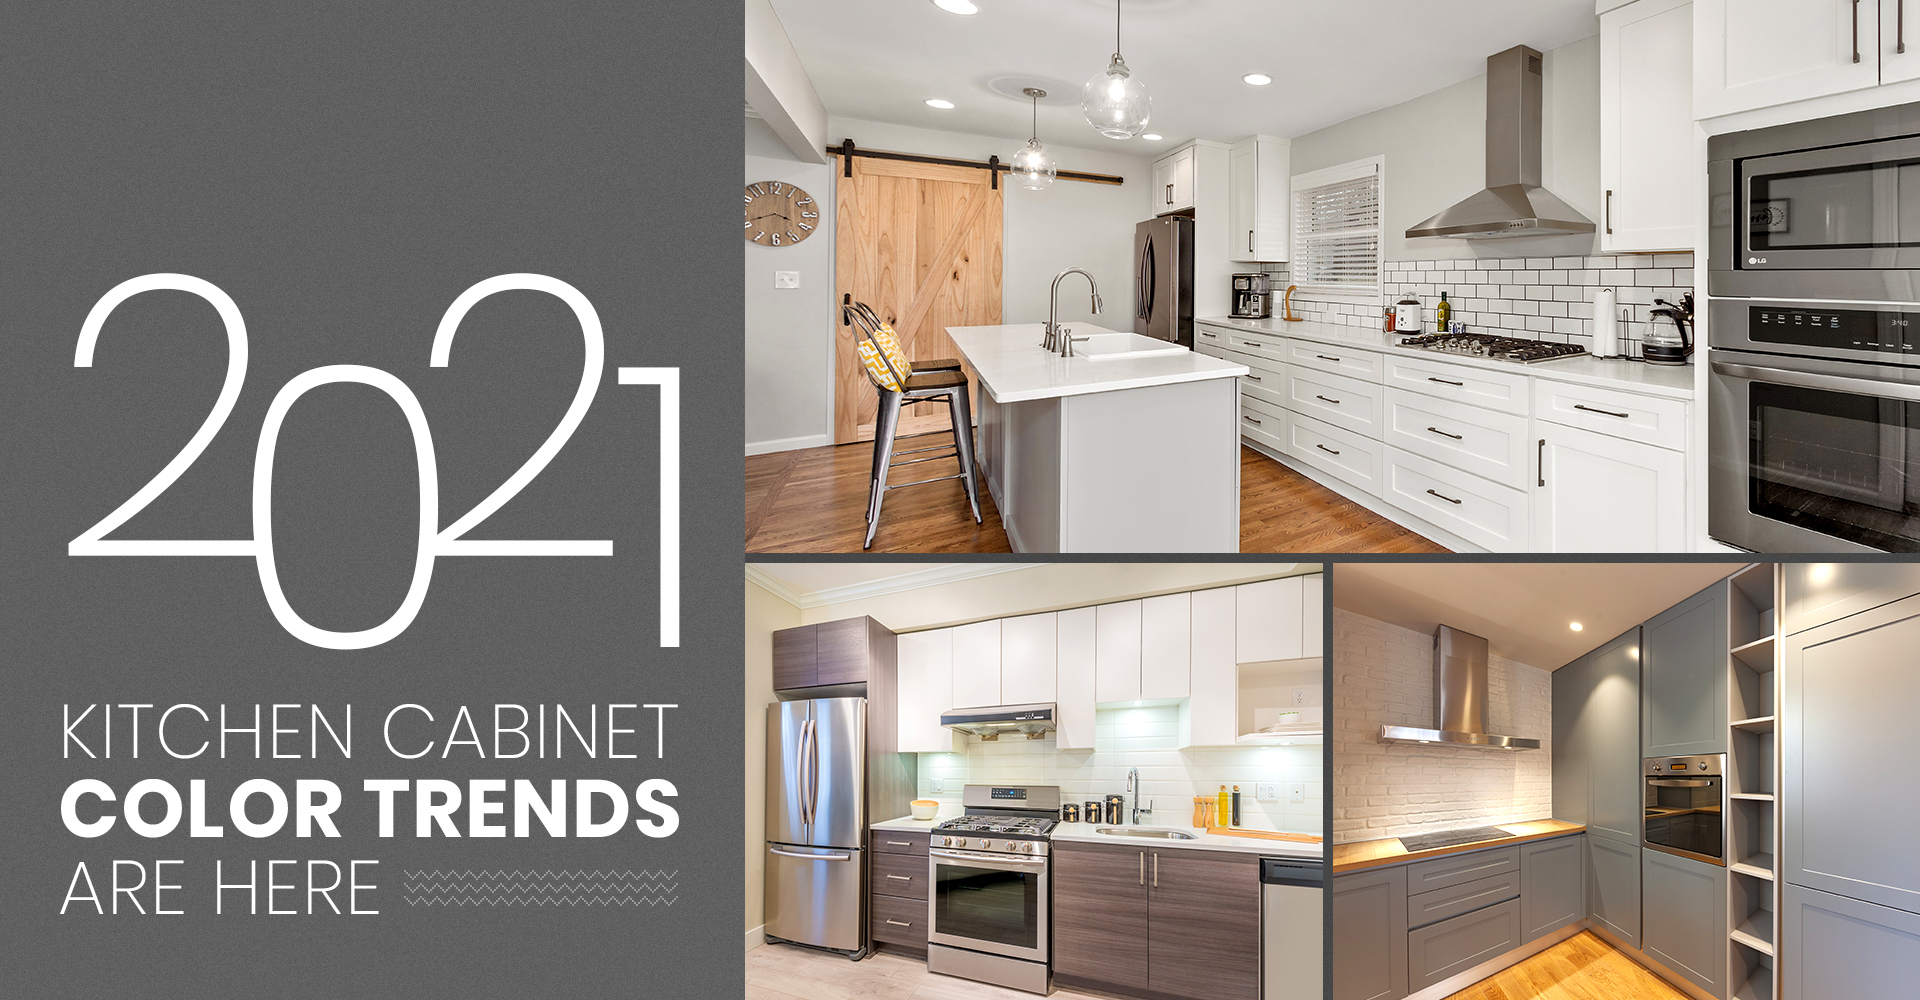 2021 Kitchen Cabinet Color Trends Are Here